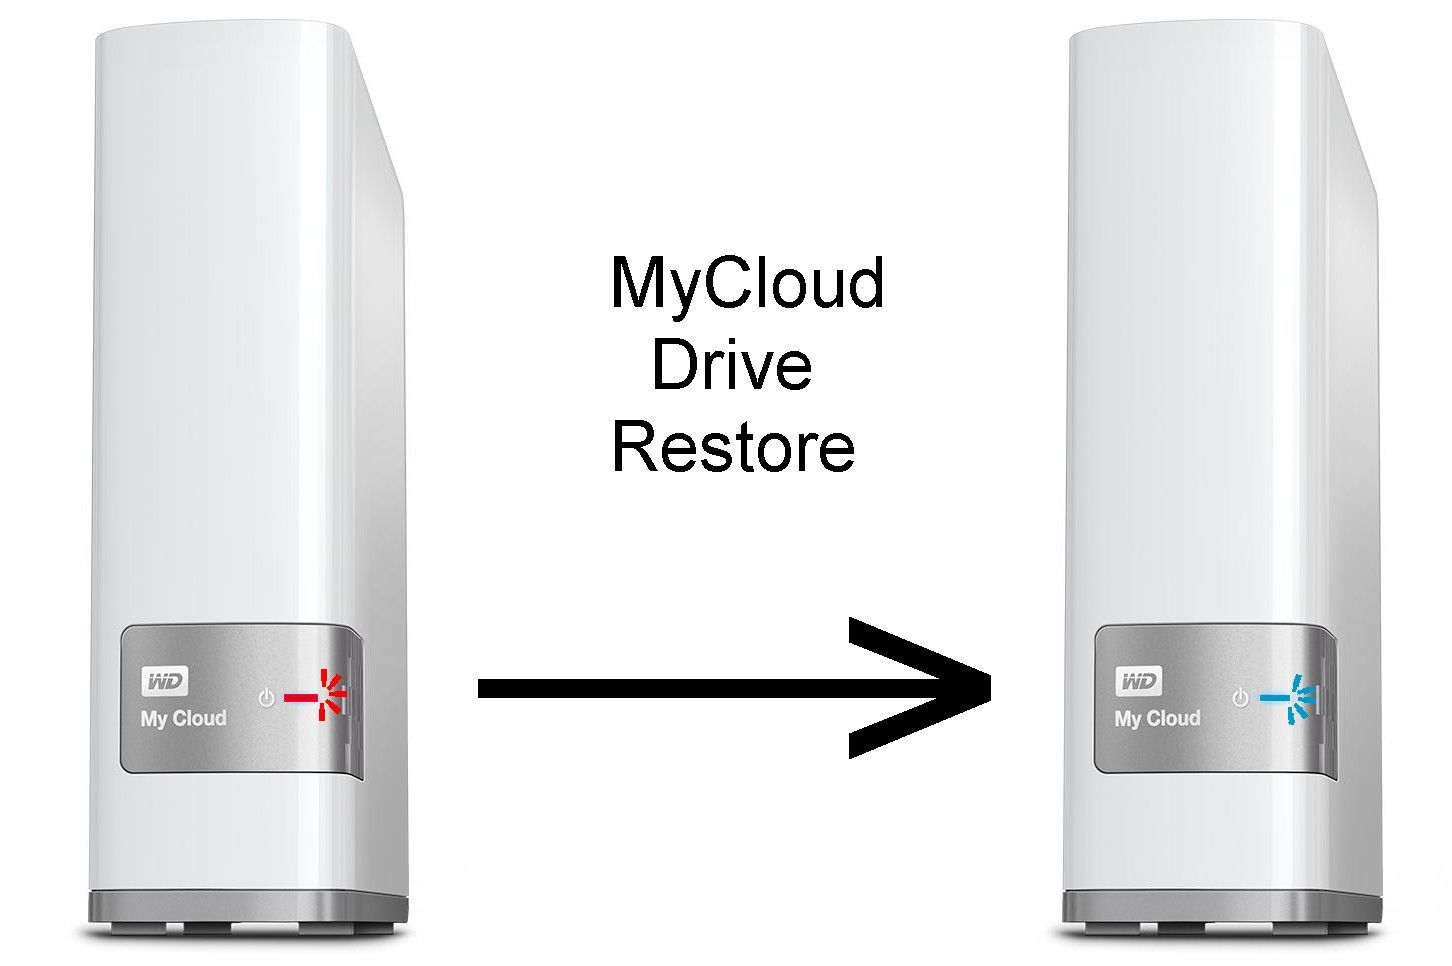 Network Attached Storage 106273 Western Digital Wd My Cloud Storage Hard Drive Restore Service 2 Thru 6tb Network Attached Storage Cloud Storage Restoration